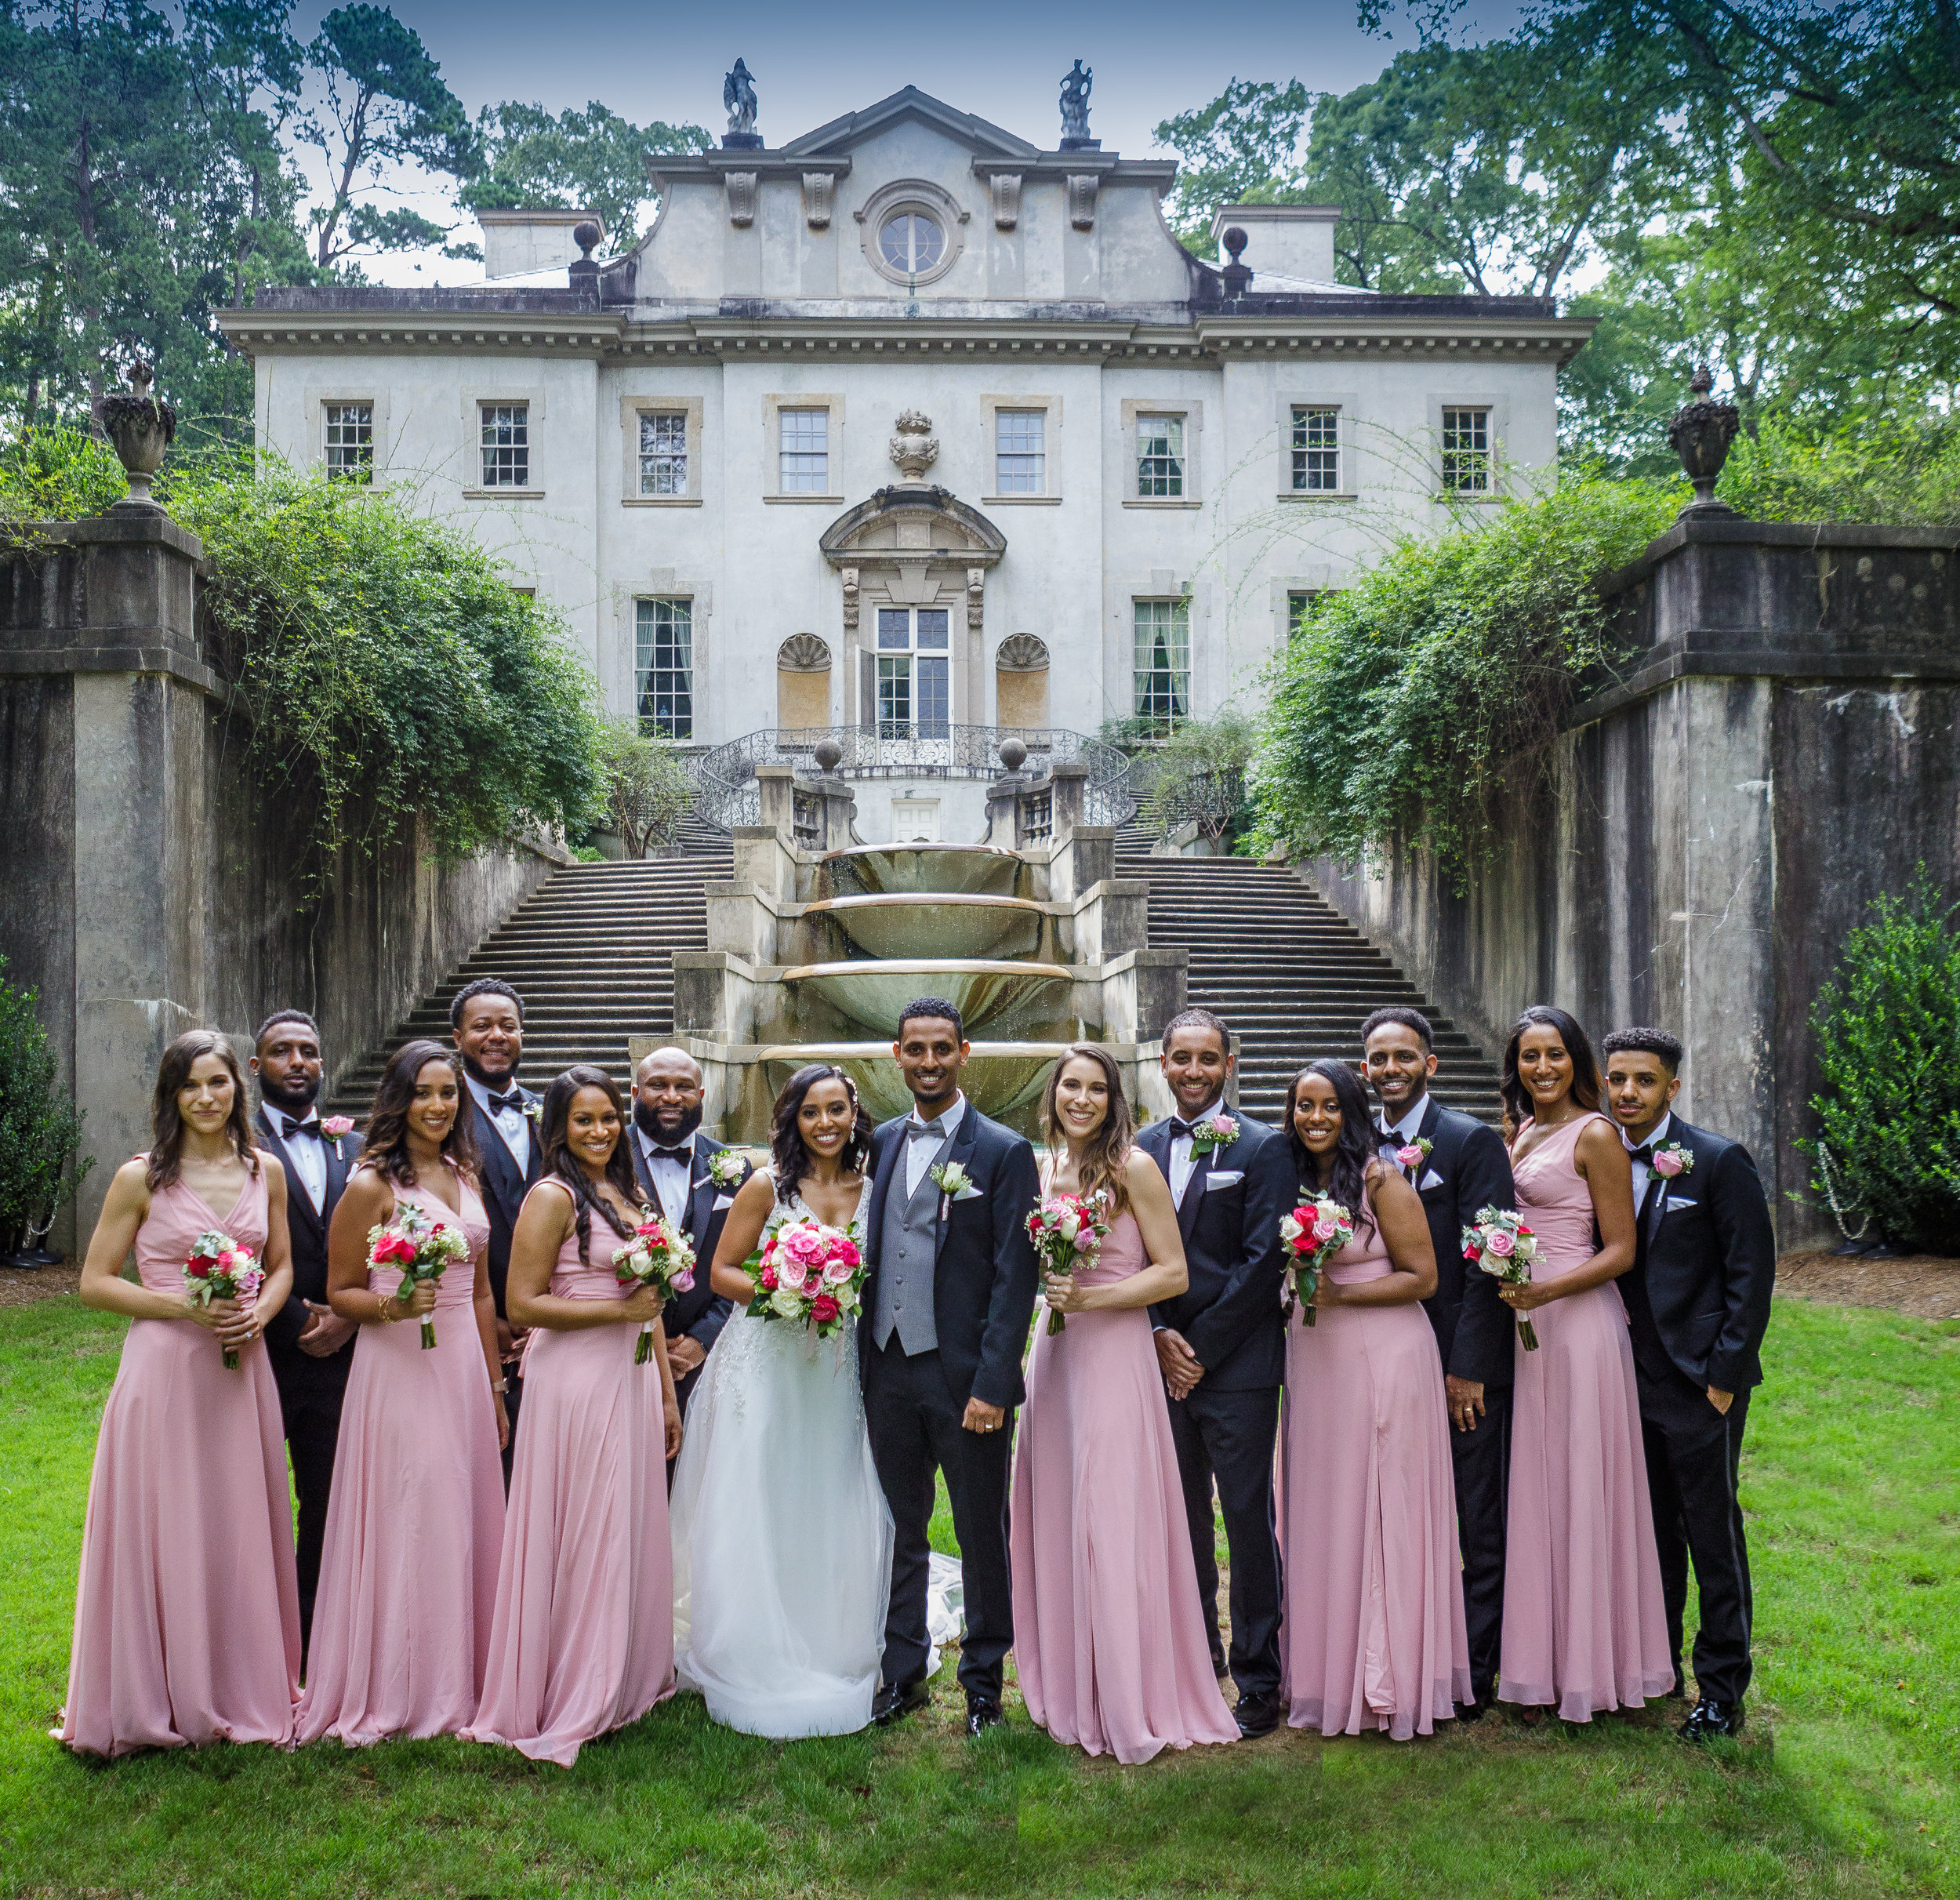 Swan House wedding photos by the Atlanta Wedding Photographers at AtlantaArtisticWeddings